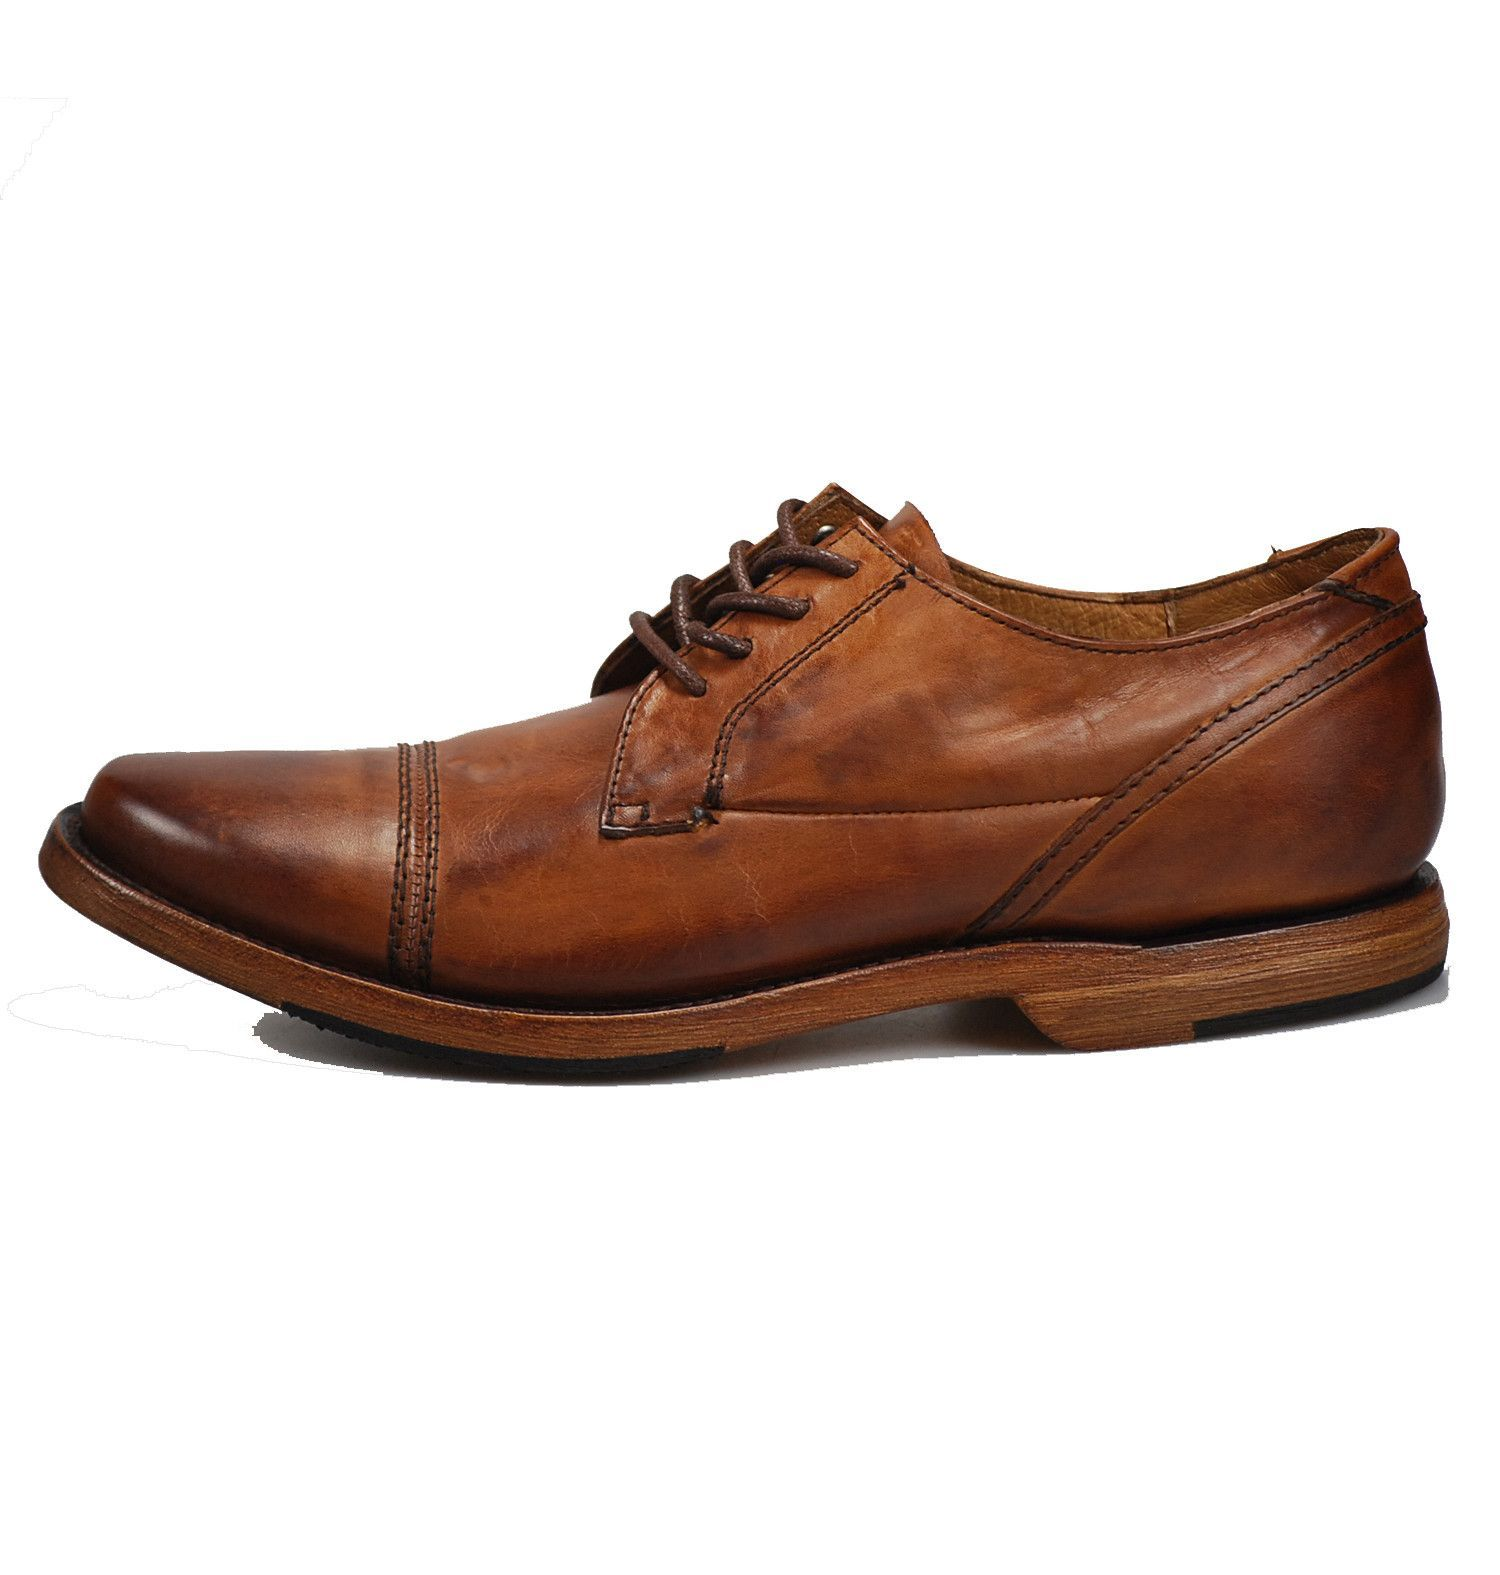 Larkin II Oxford Chedron